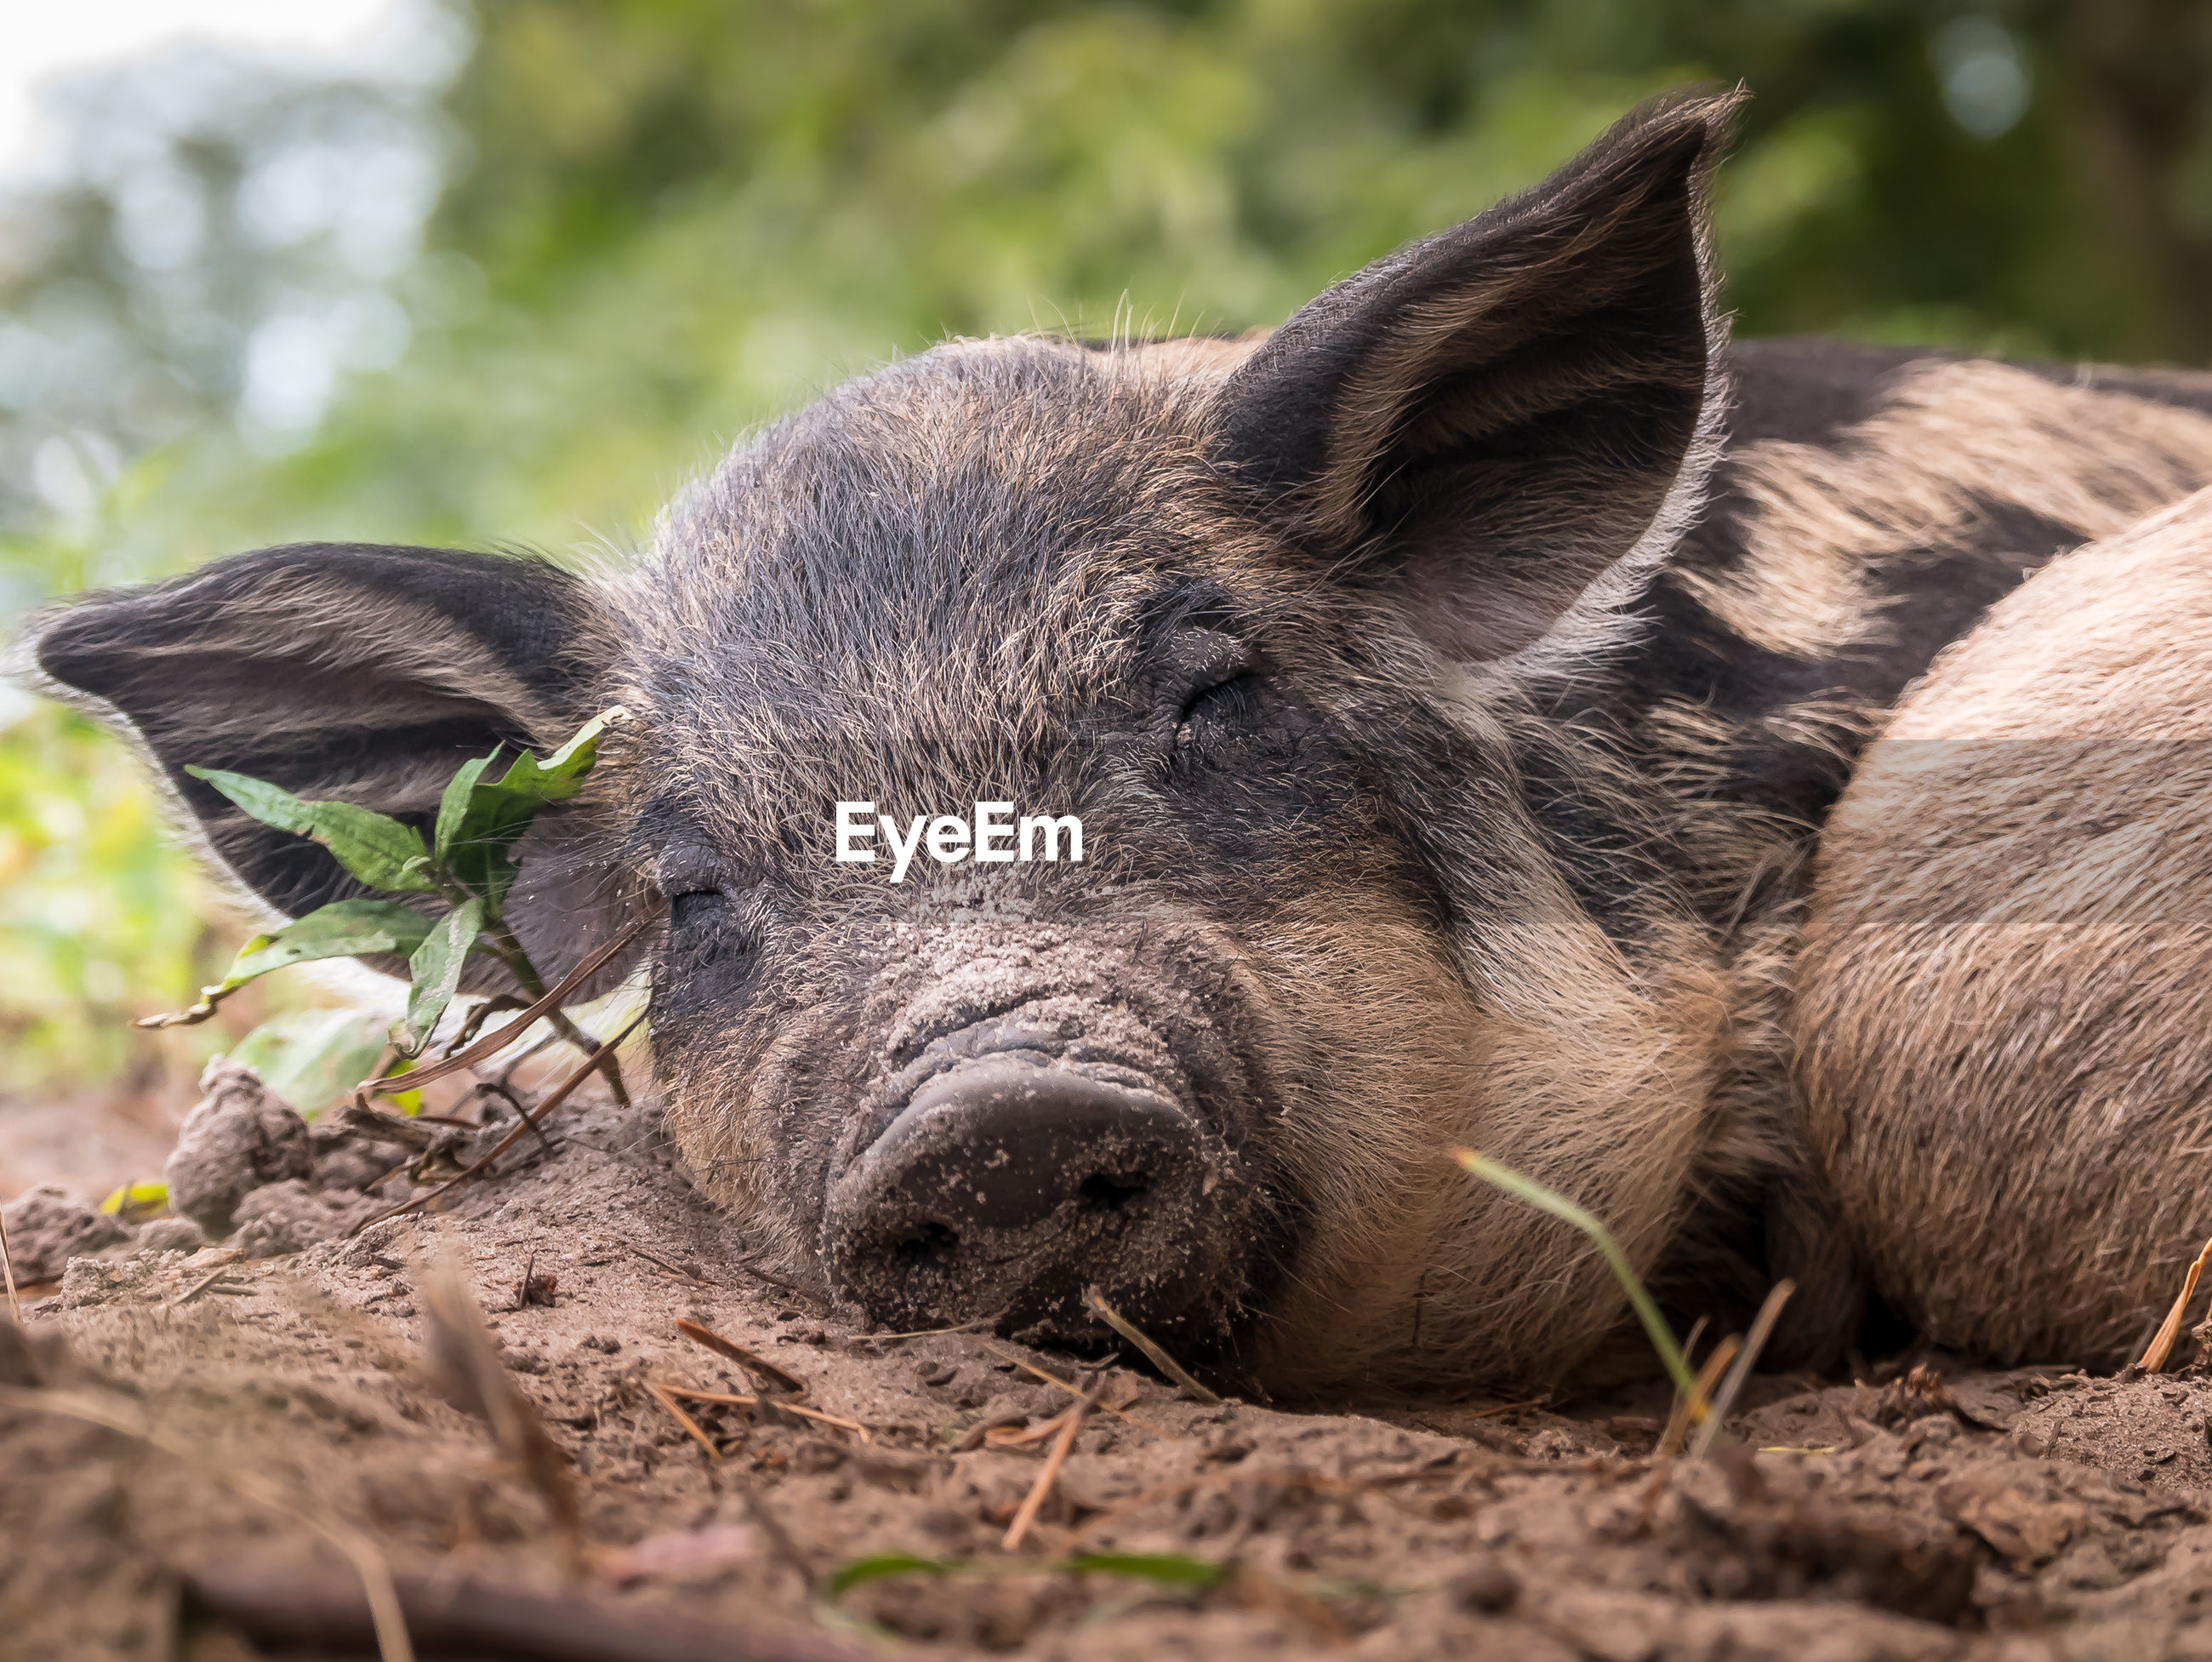 Pig relaxing on land